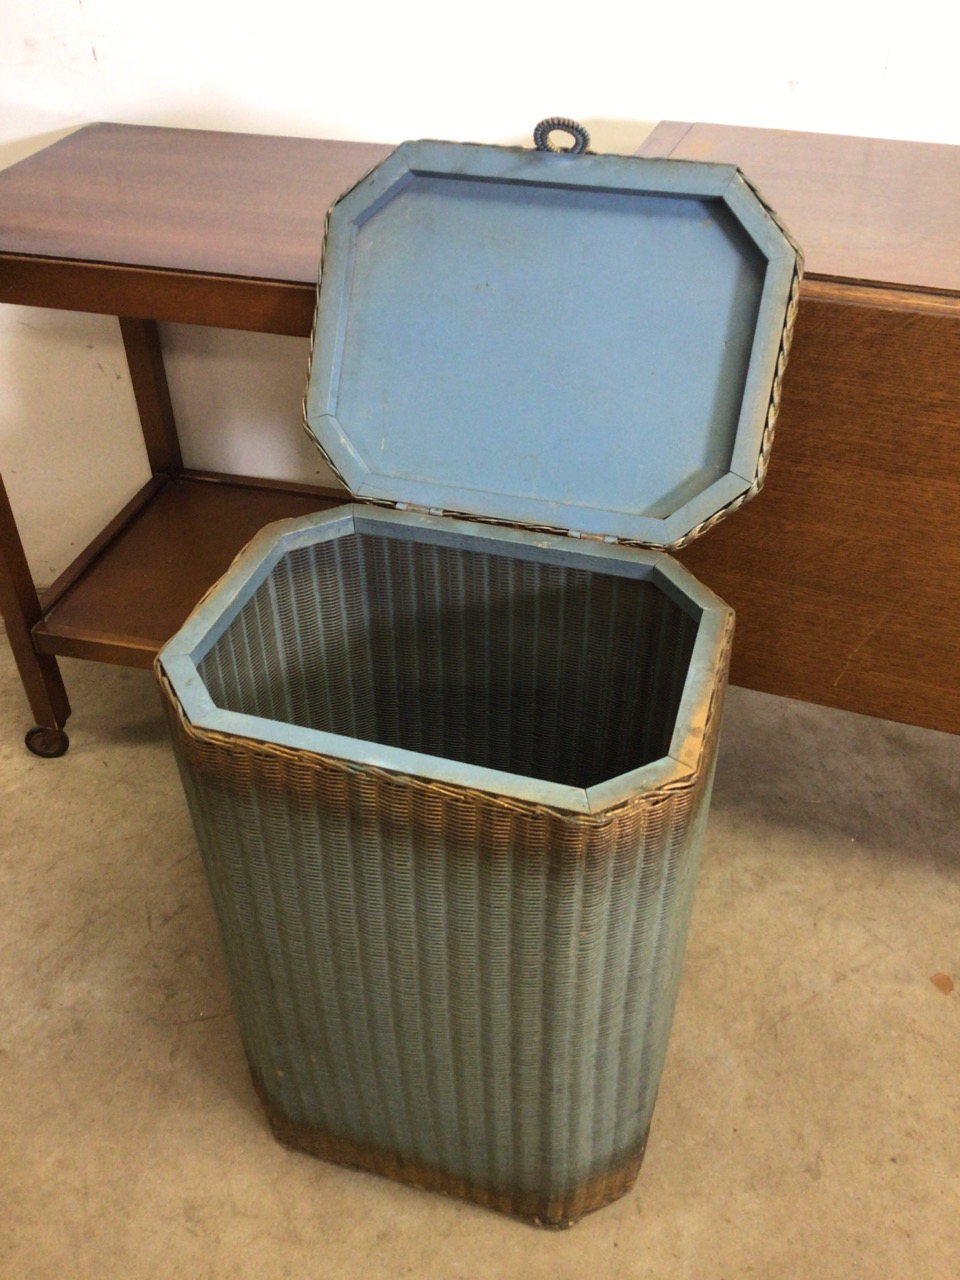 Lloyd loom lusty laundry basket also with two mid century tea trolleys one with folding drop flap - Image 2 of 6